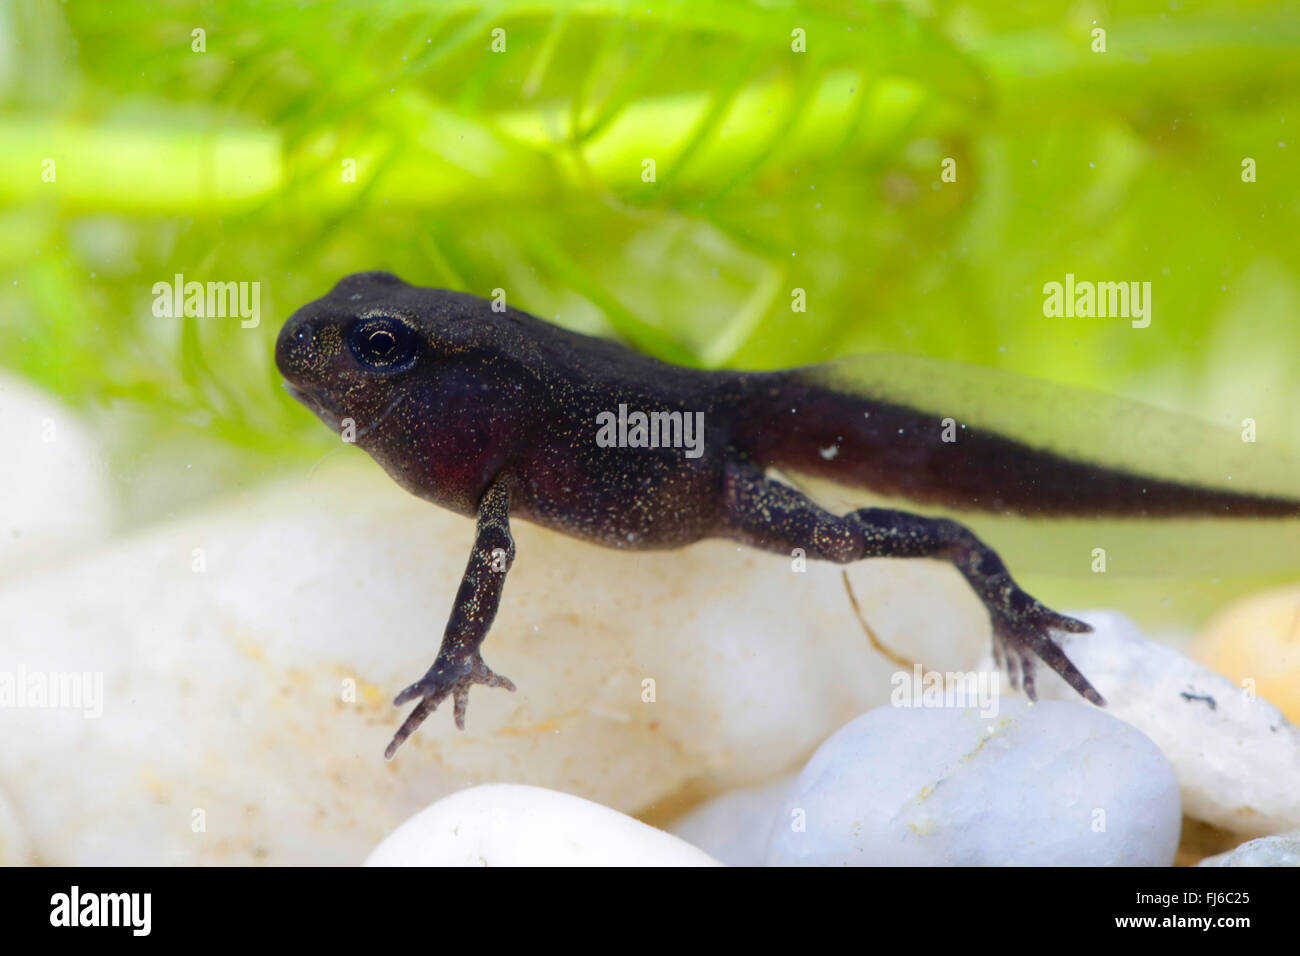 European common toad (Bufo bufo), fully developed polliwog, under water photo, Germany, Bavaria - Stock Image